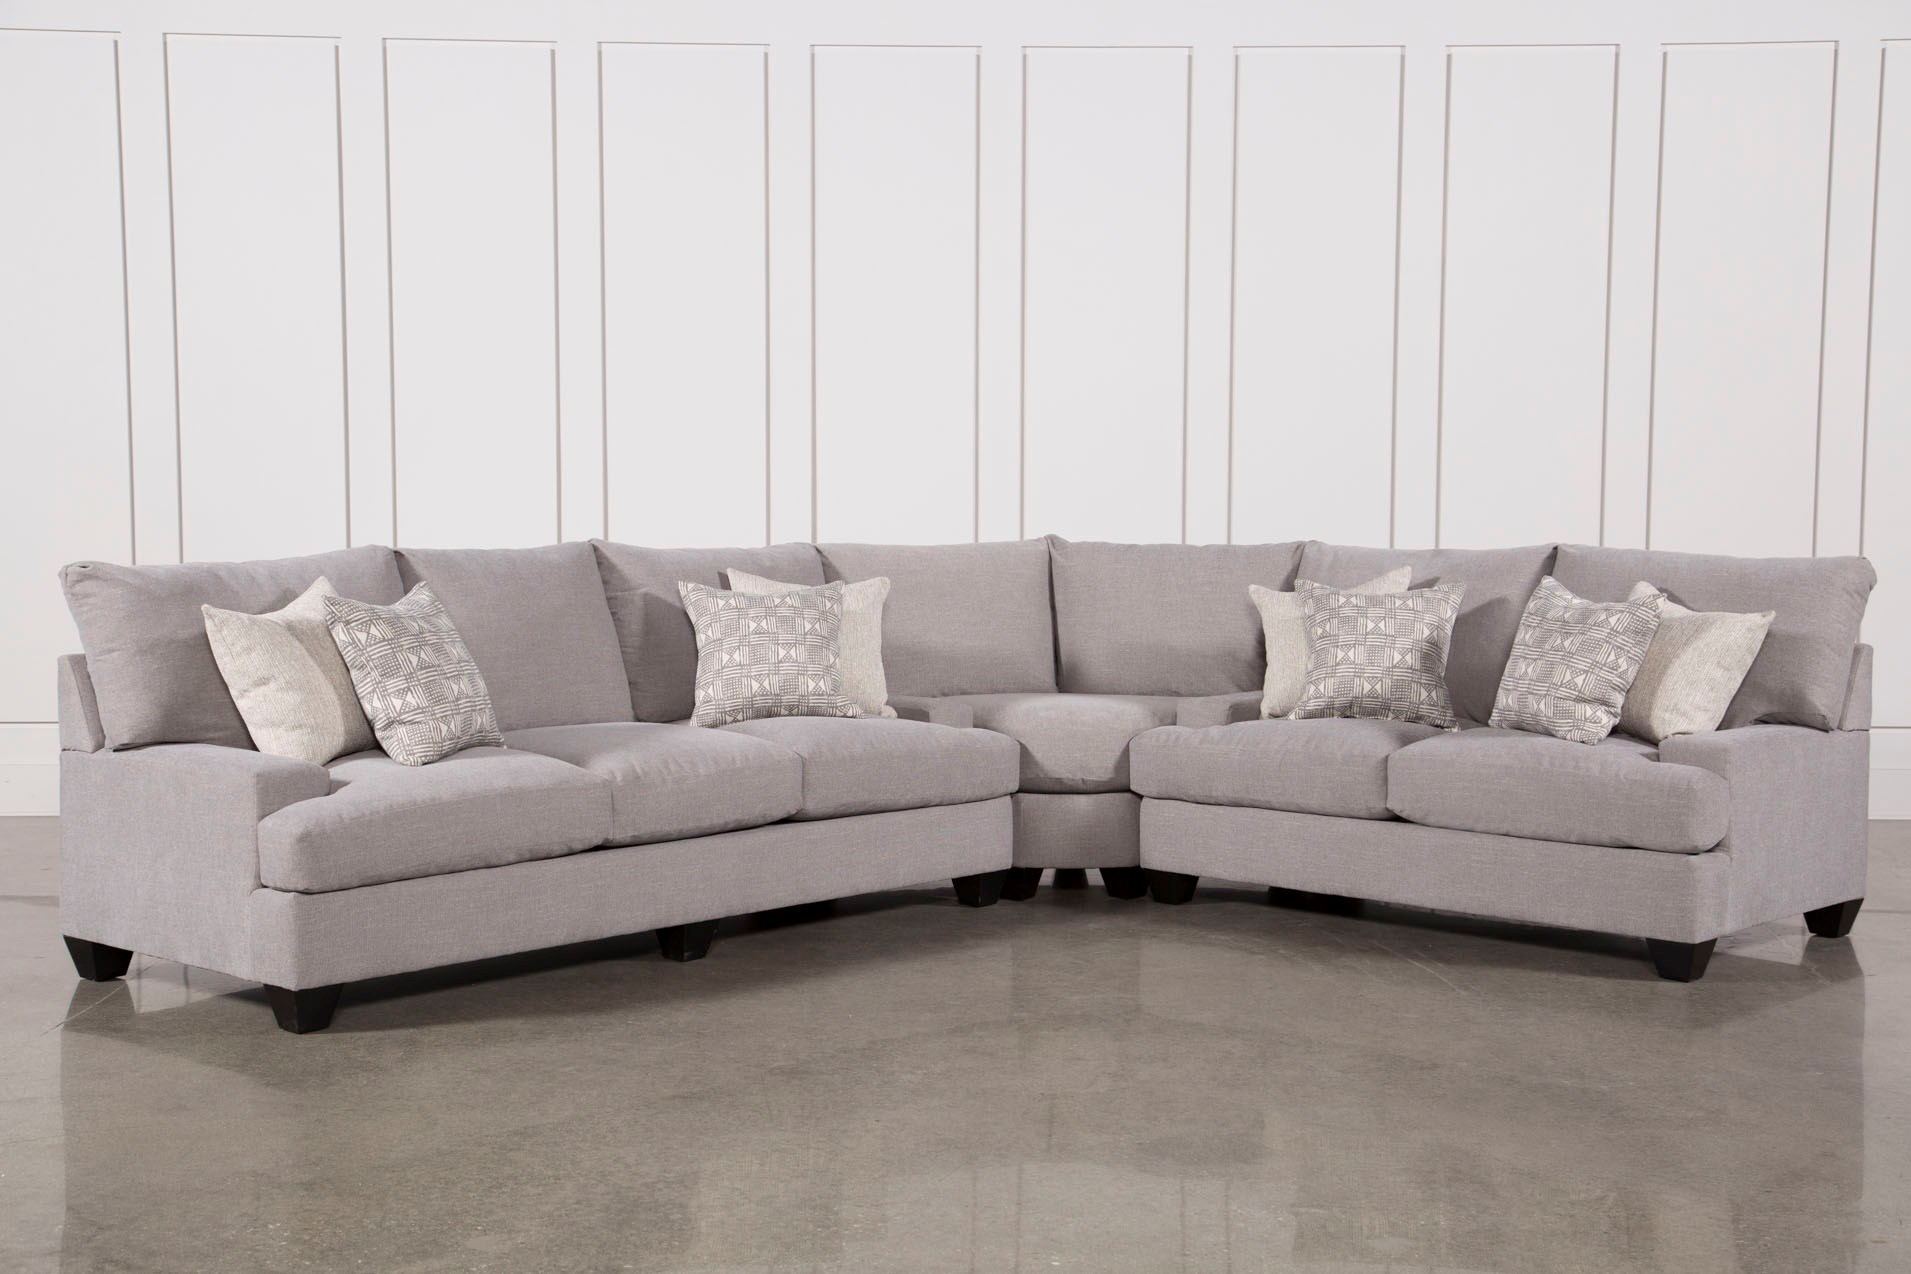 set of couches and in recently with down unique sectional filled sofa sofas released loveseats top most